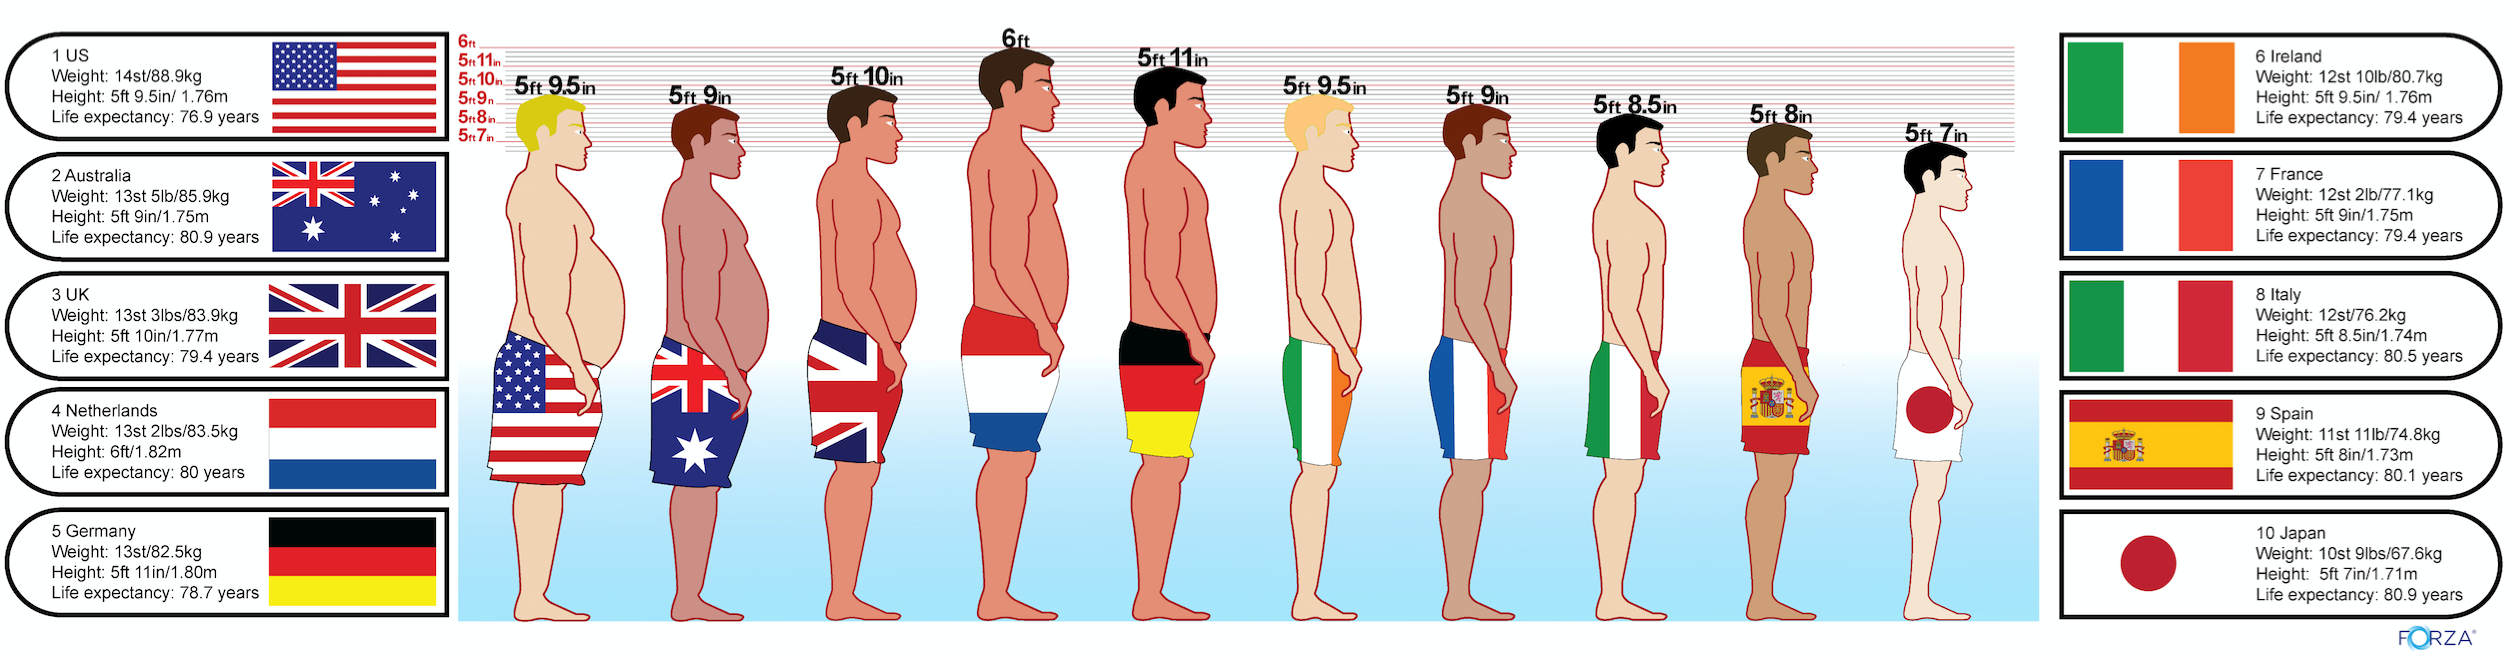 average height for japanese males